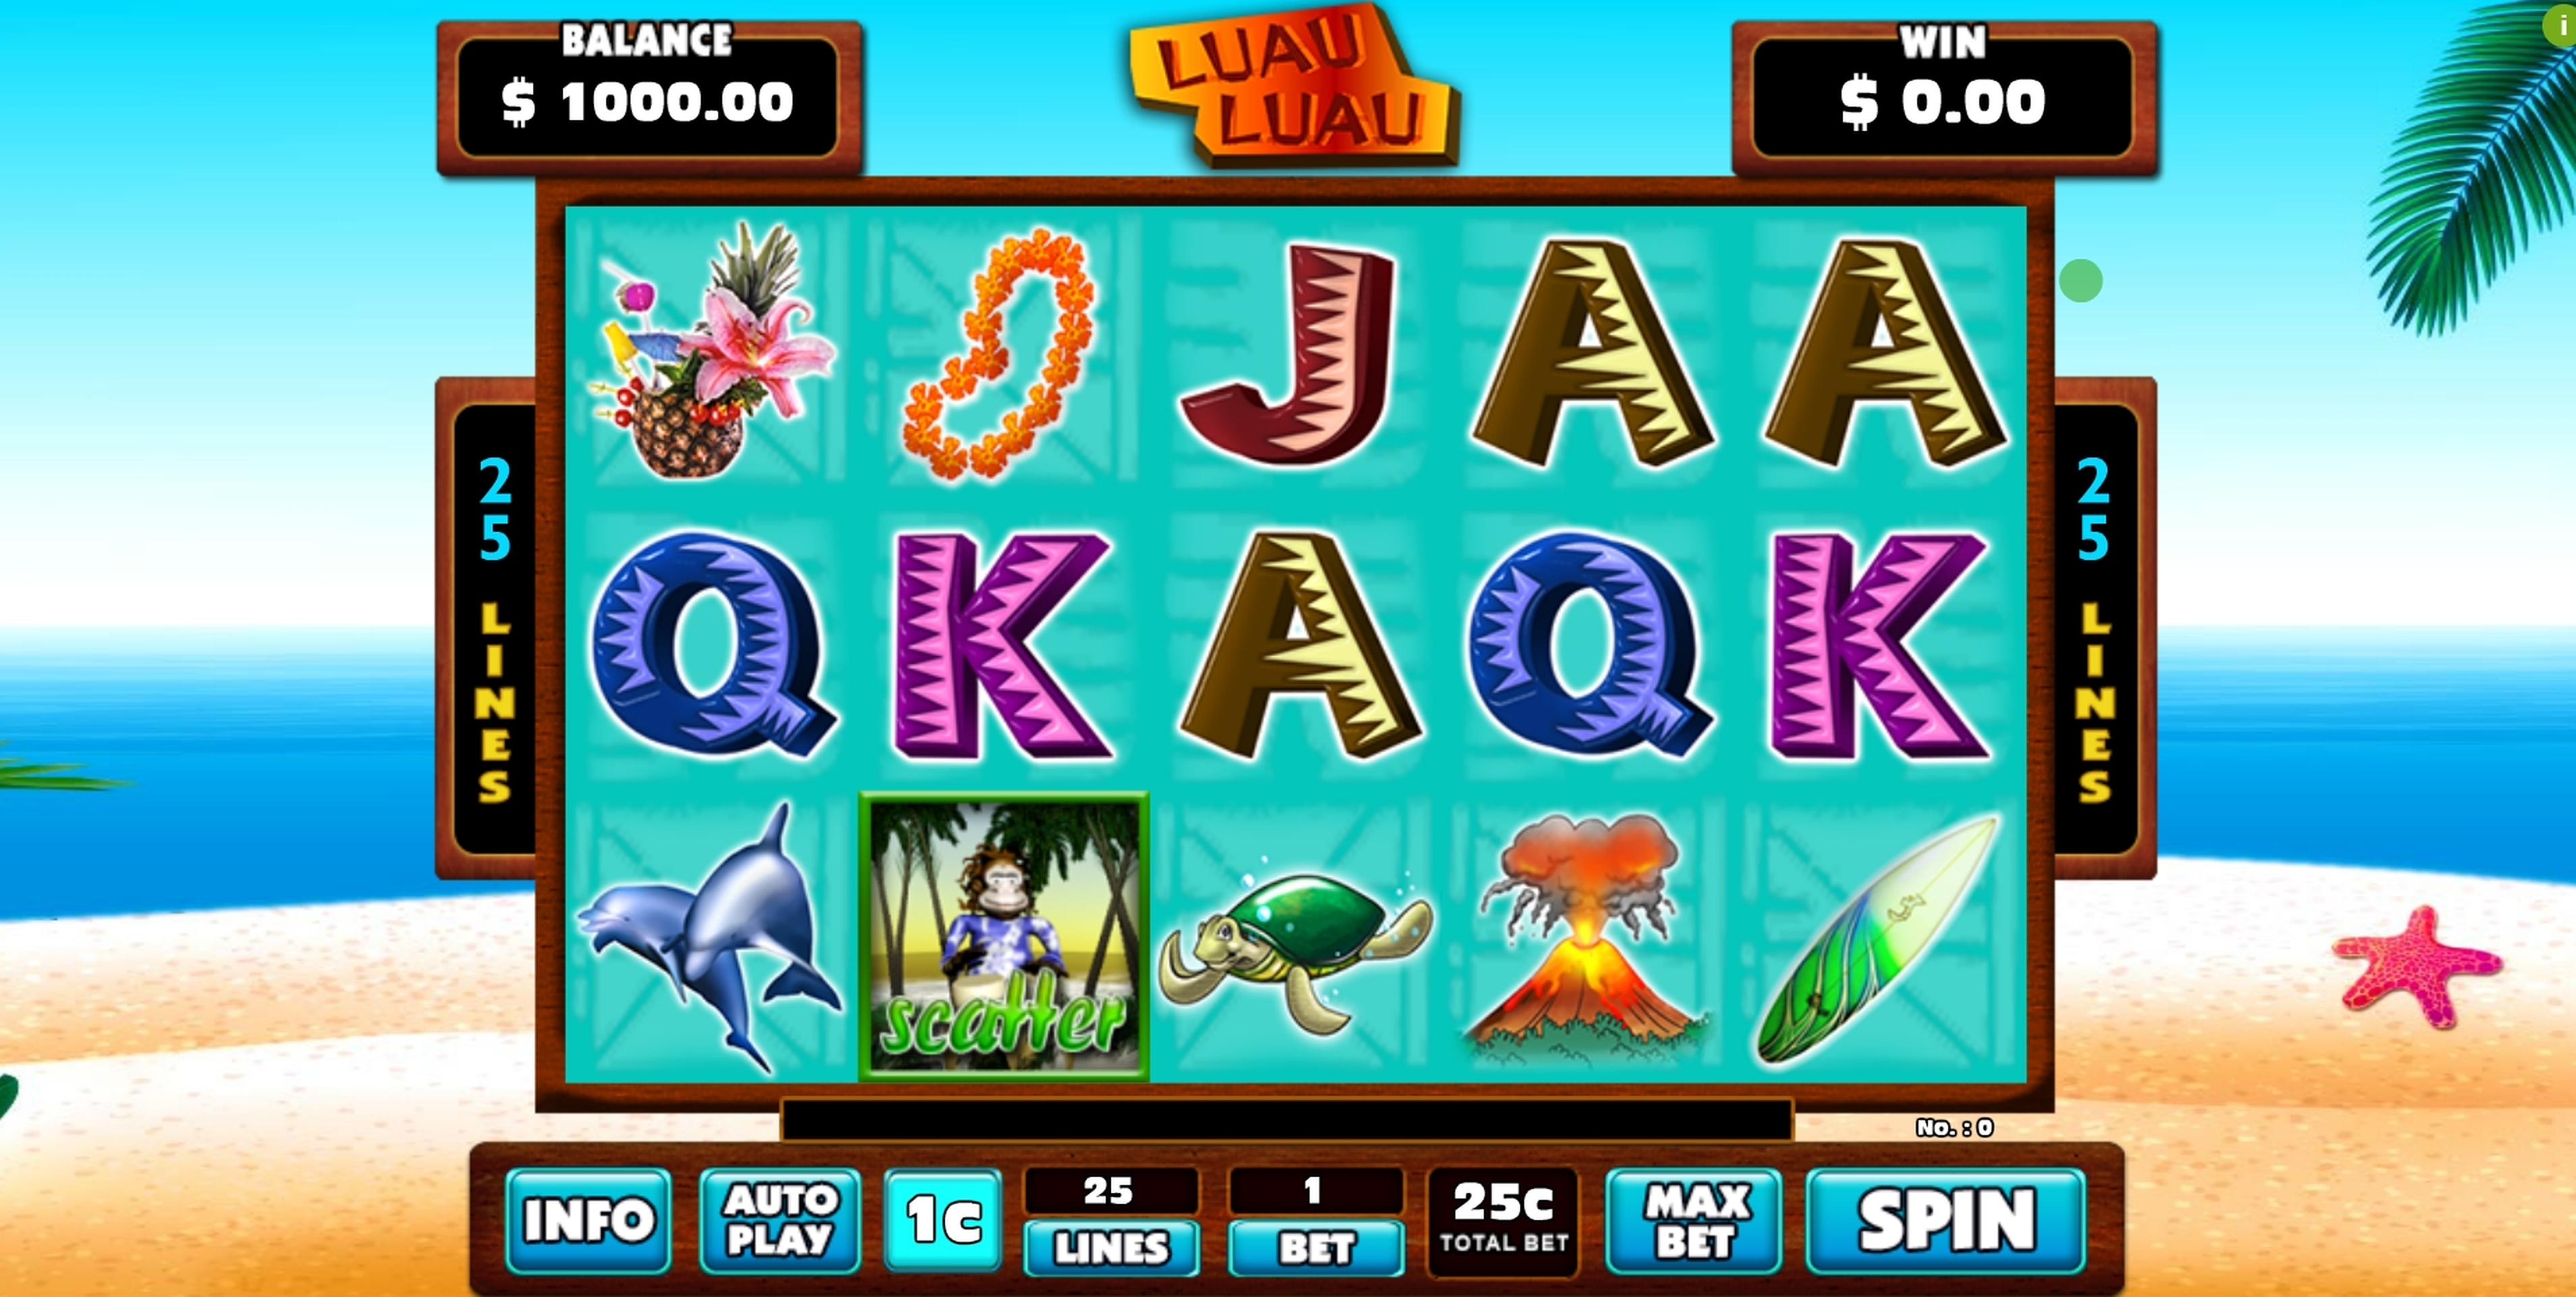 Reels in Luau Luau Slot Game by GMW